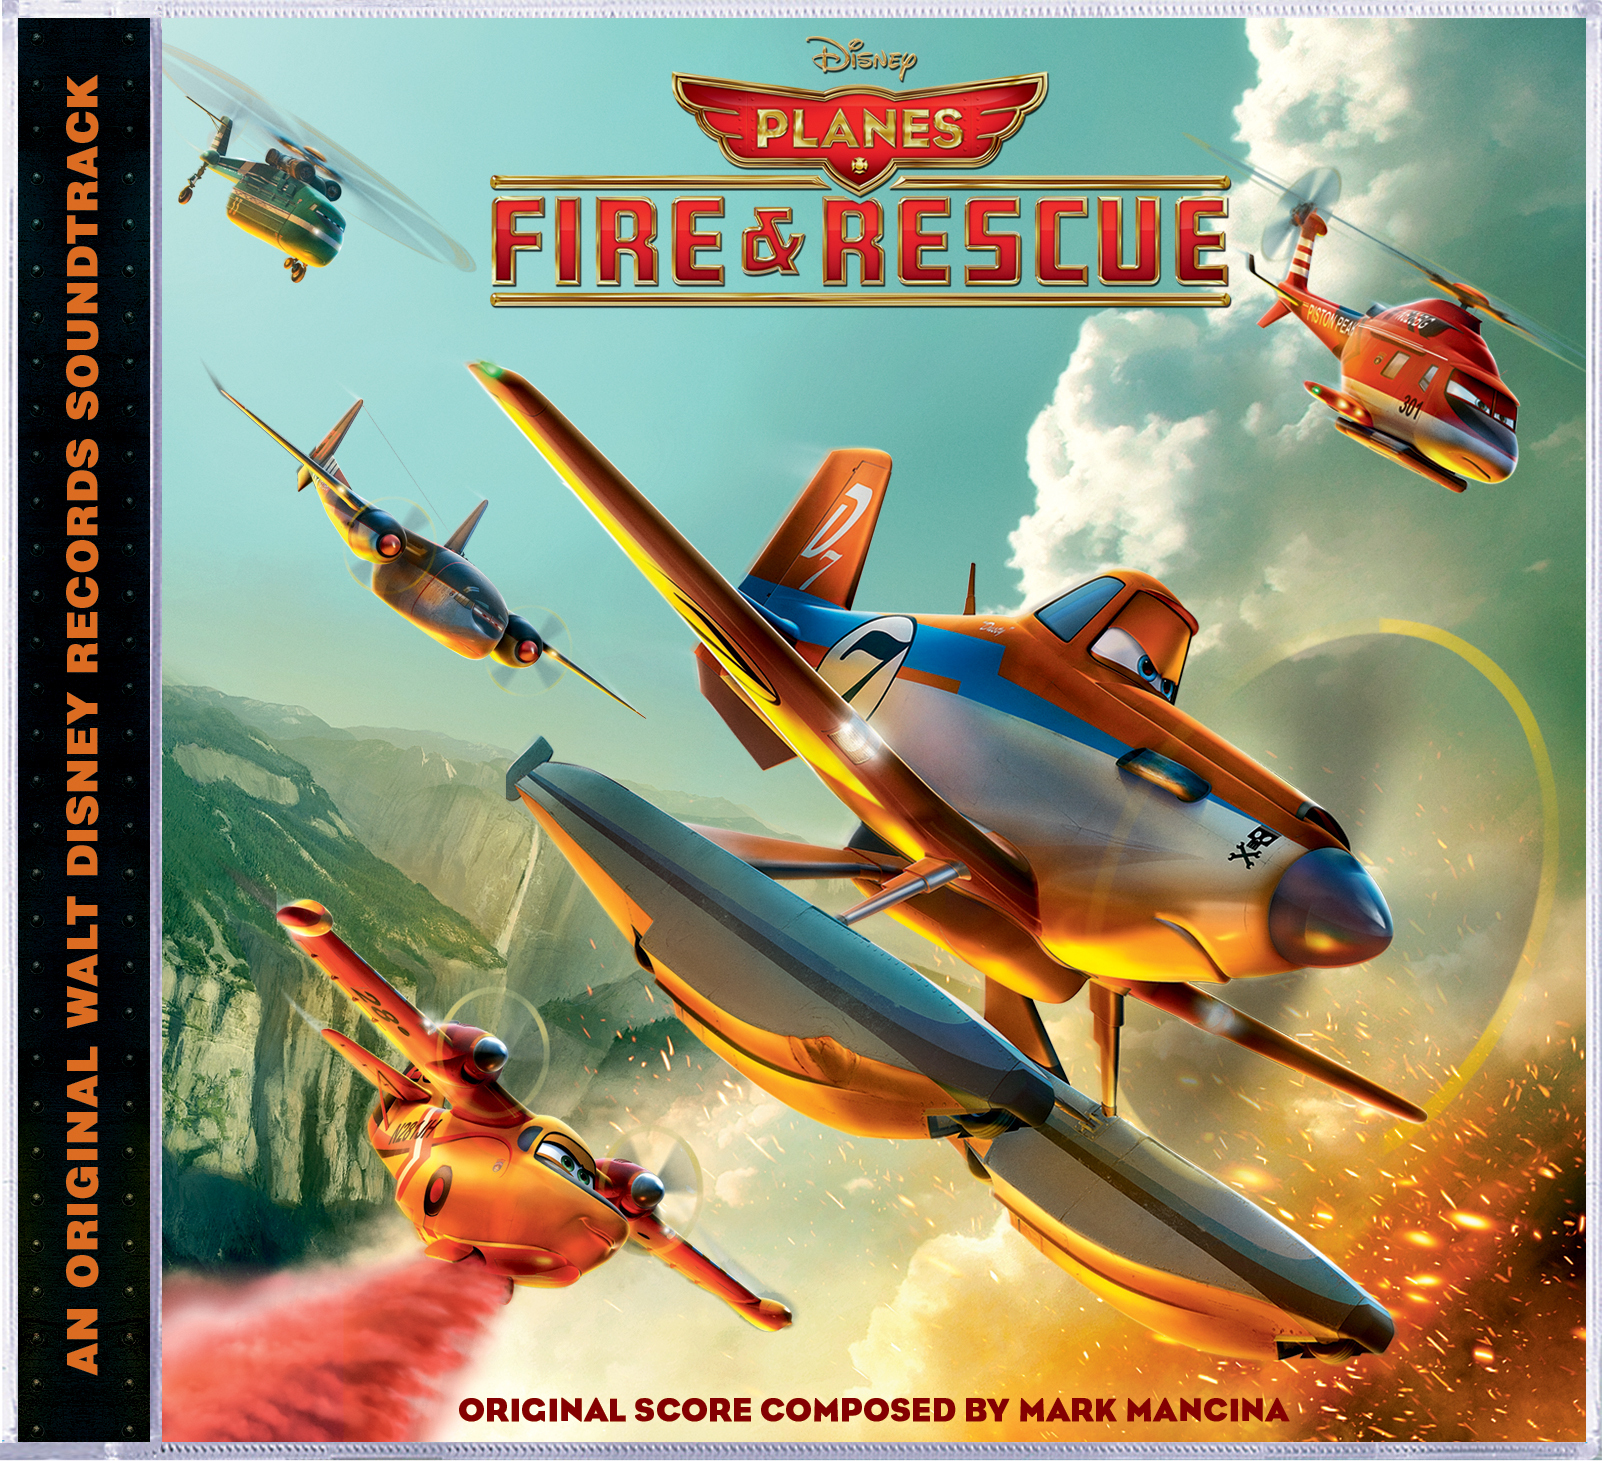 Walt Disney Records Releases PLANES: FIRE & RESCUE Original Motion Picture Soundtrack Today